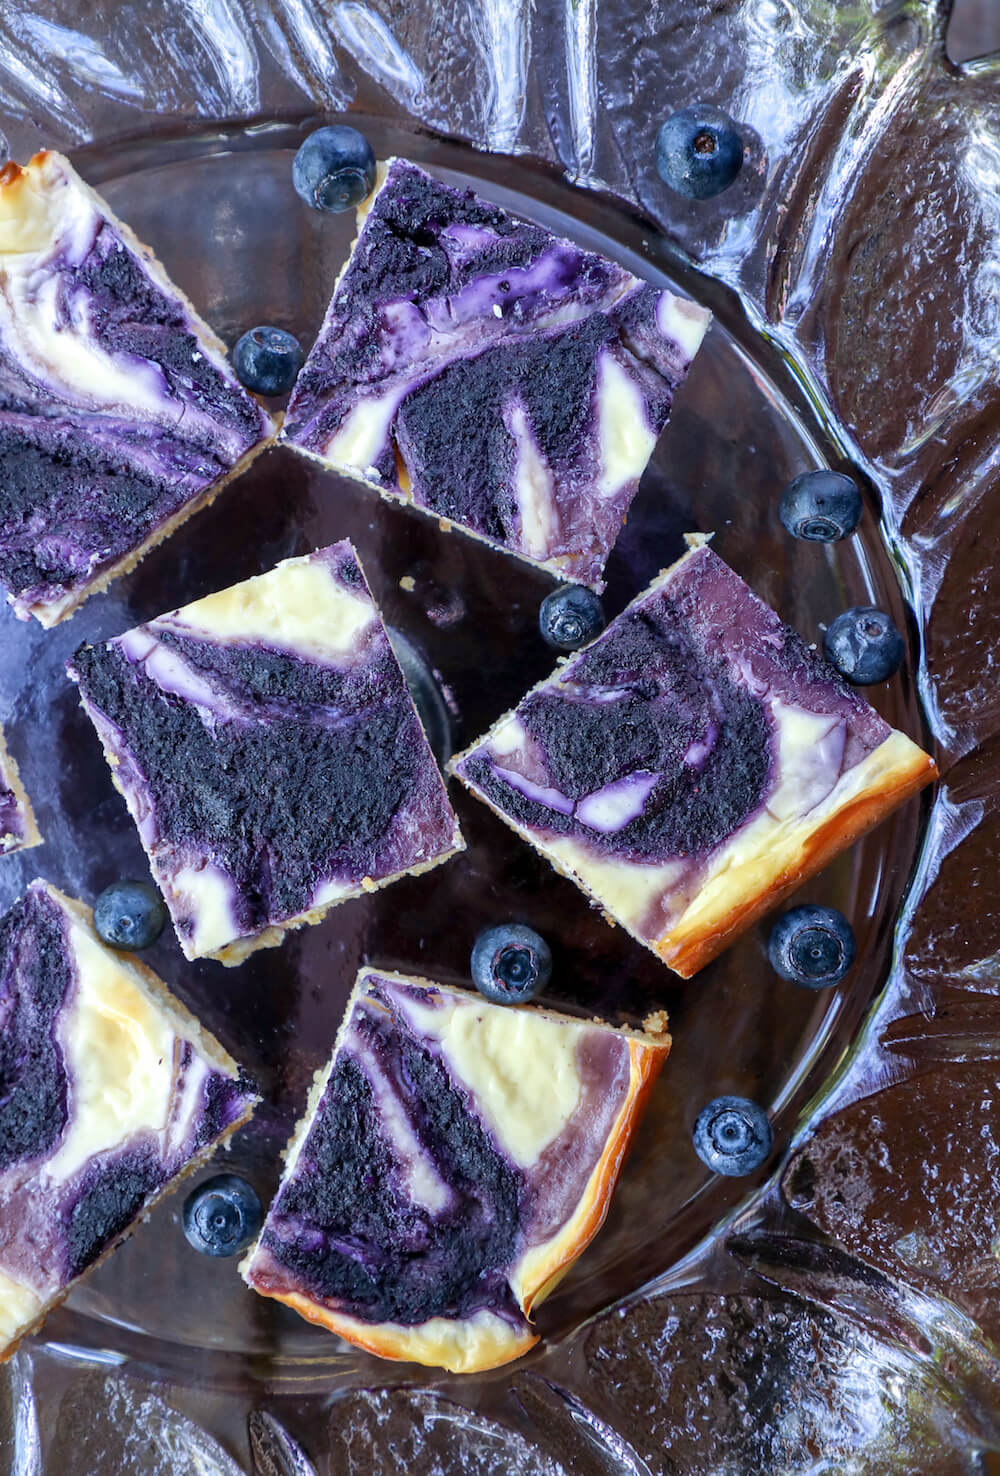 Easy Keto Blueberry Cheesecake Bars - make the most of blueberry season while still keeping it low carb and losing weight!  Gluten free and Atkins Friendly!